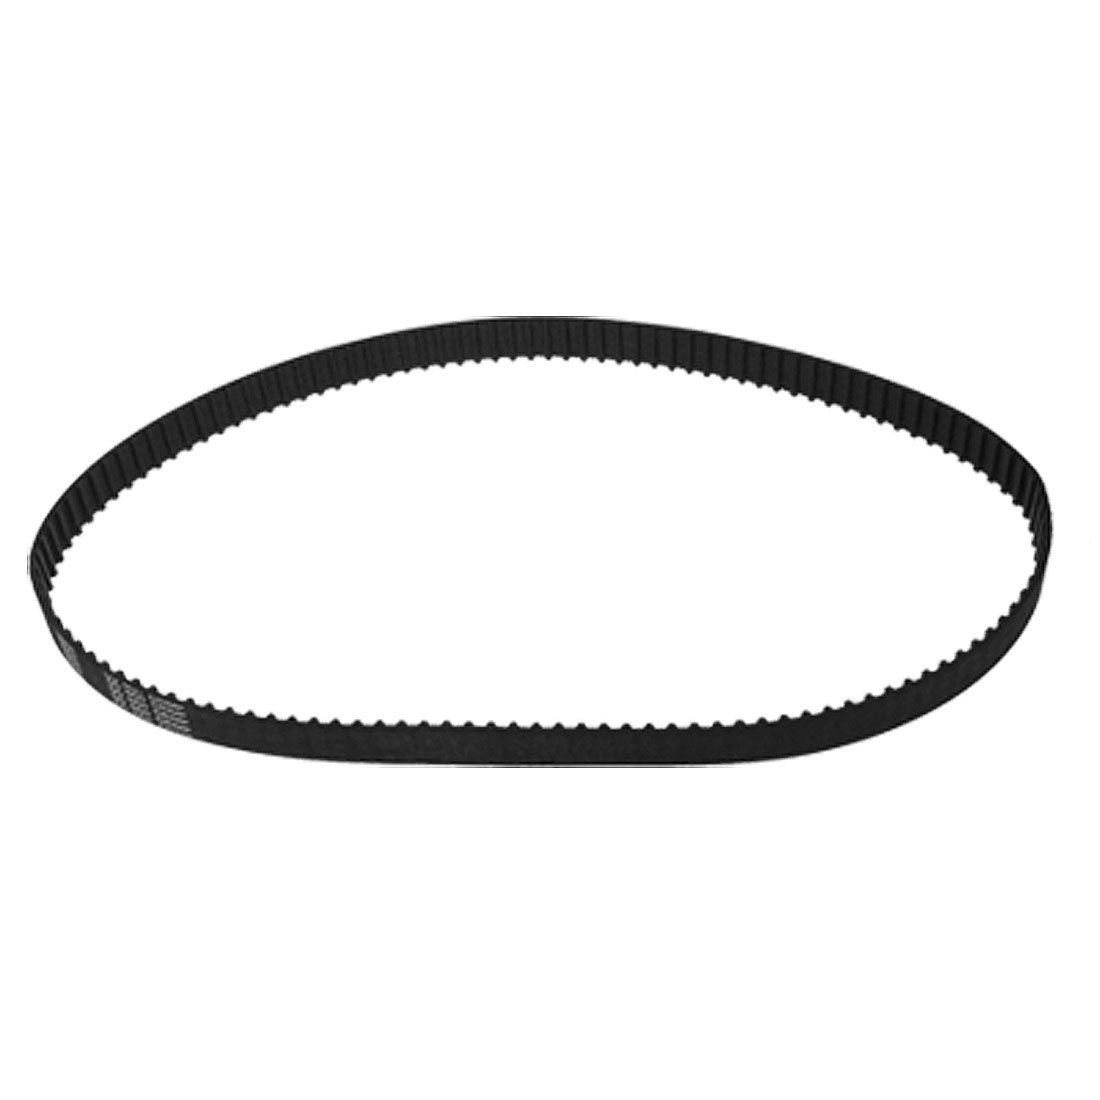 "1/5"" Pitch 9/16"" Wide 125 Teeth Rubber PU 250XL Timing Belt Black"